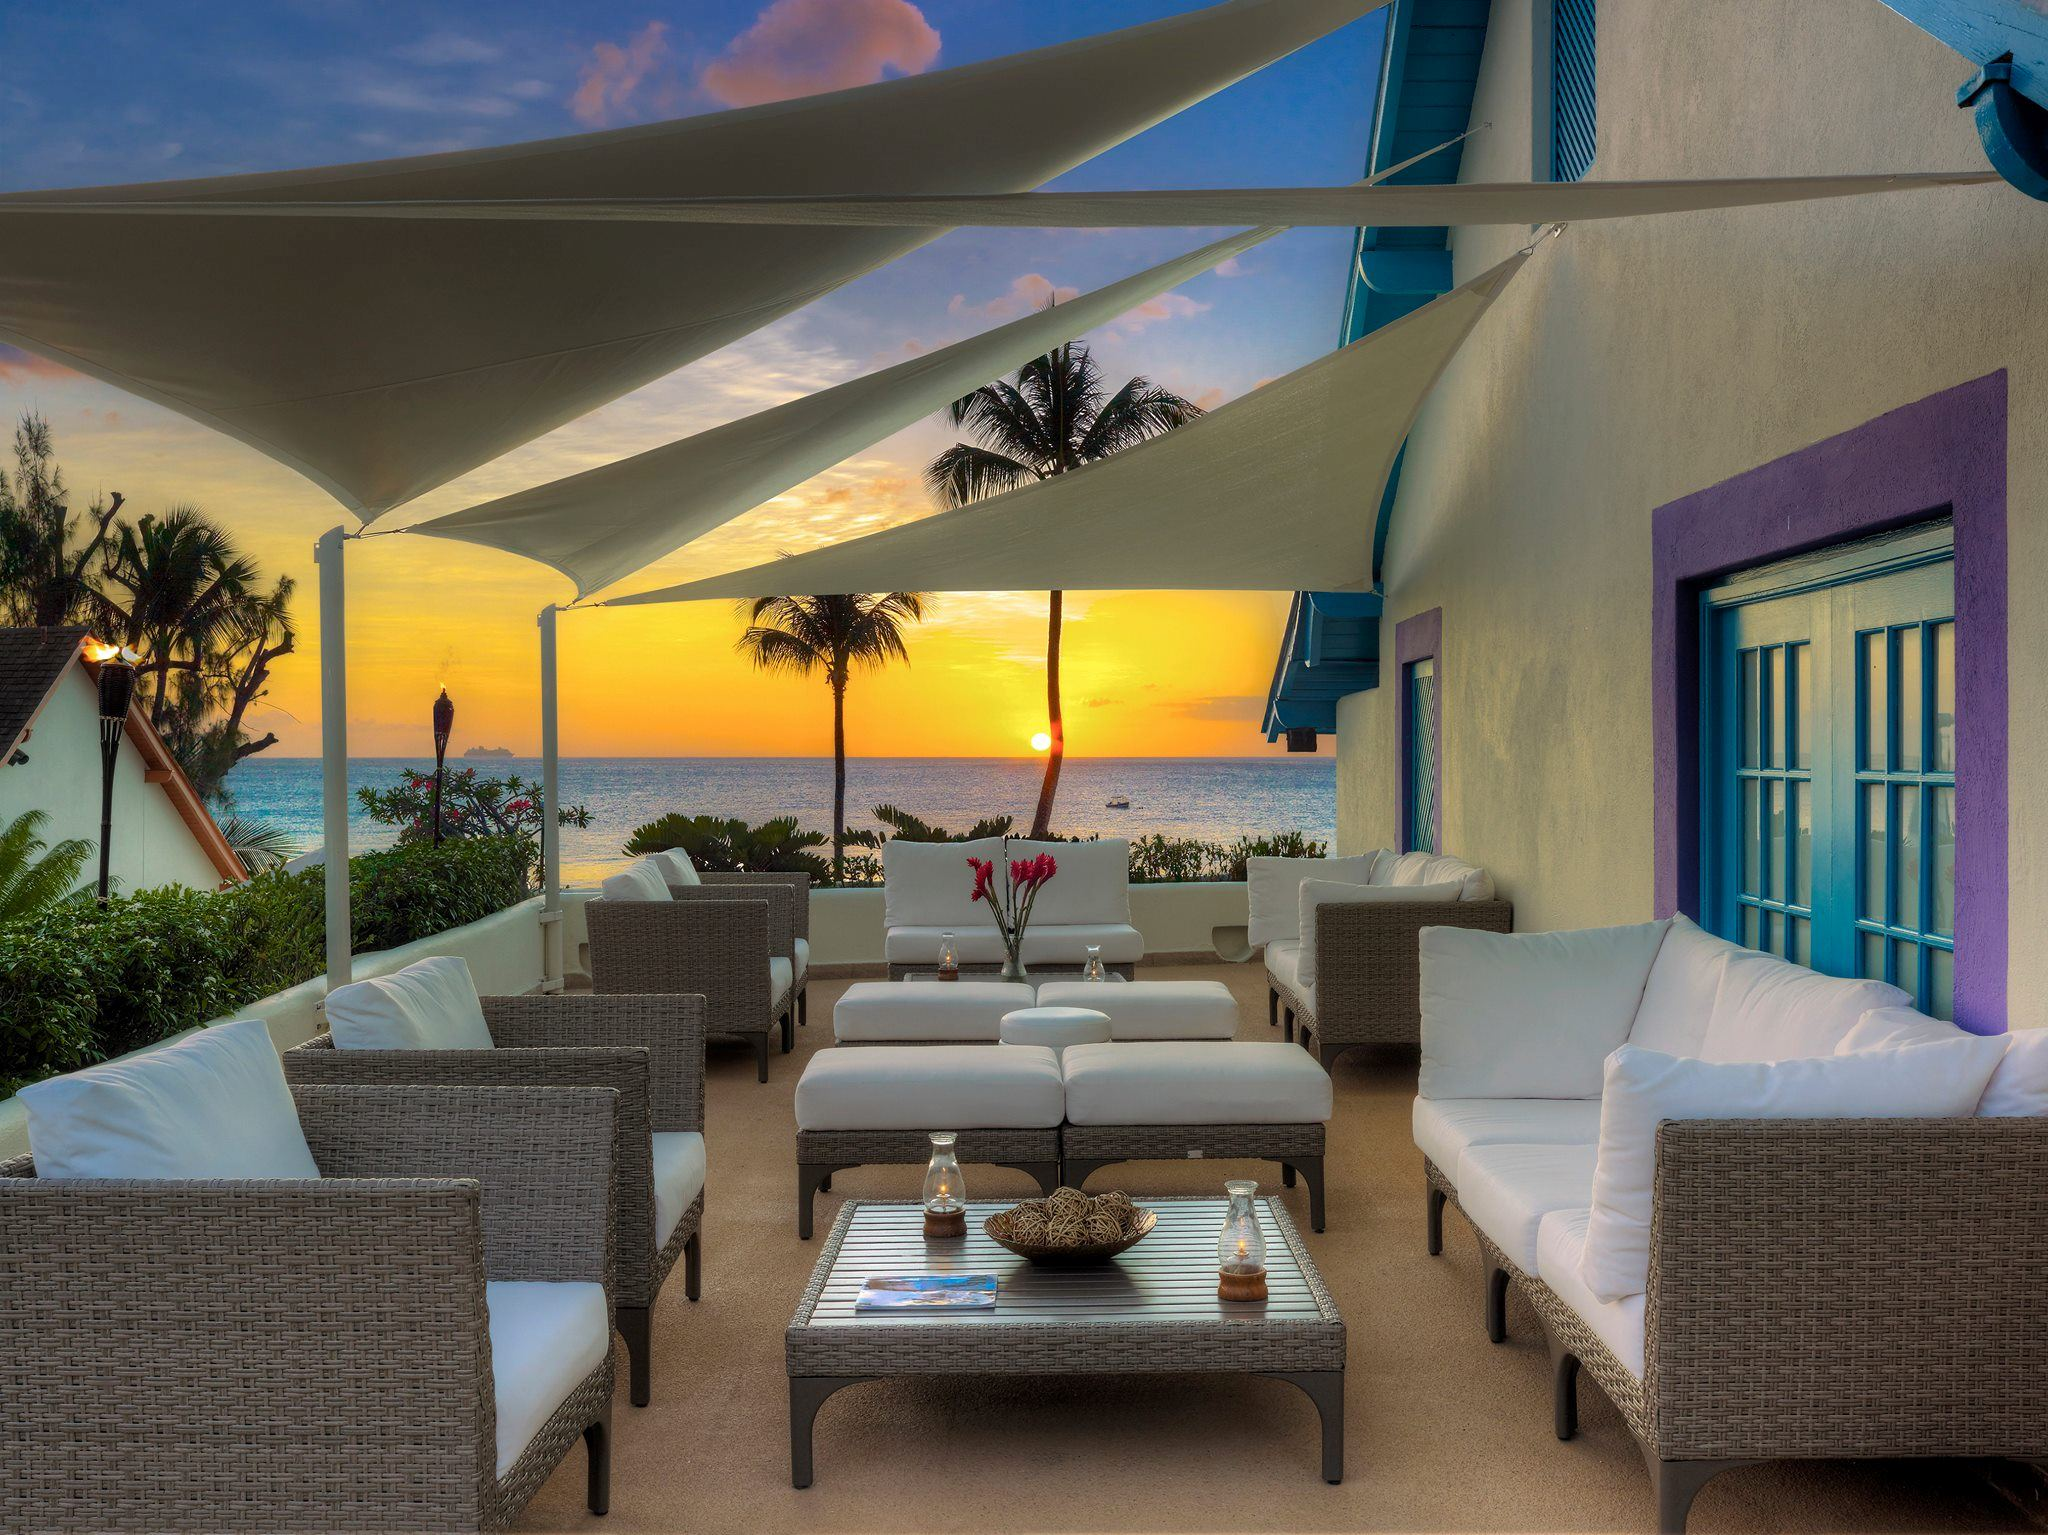 Crystal Cove by Elegant Hotels - 7